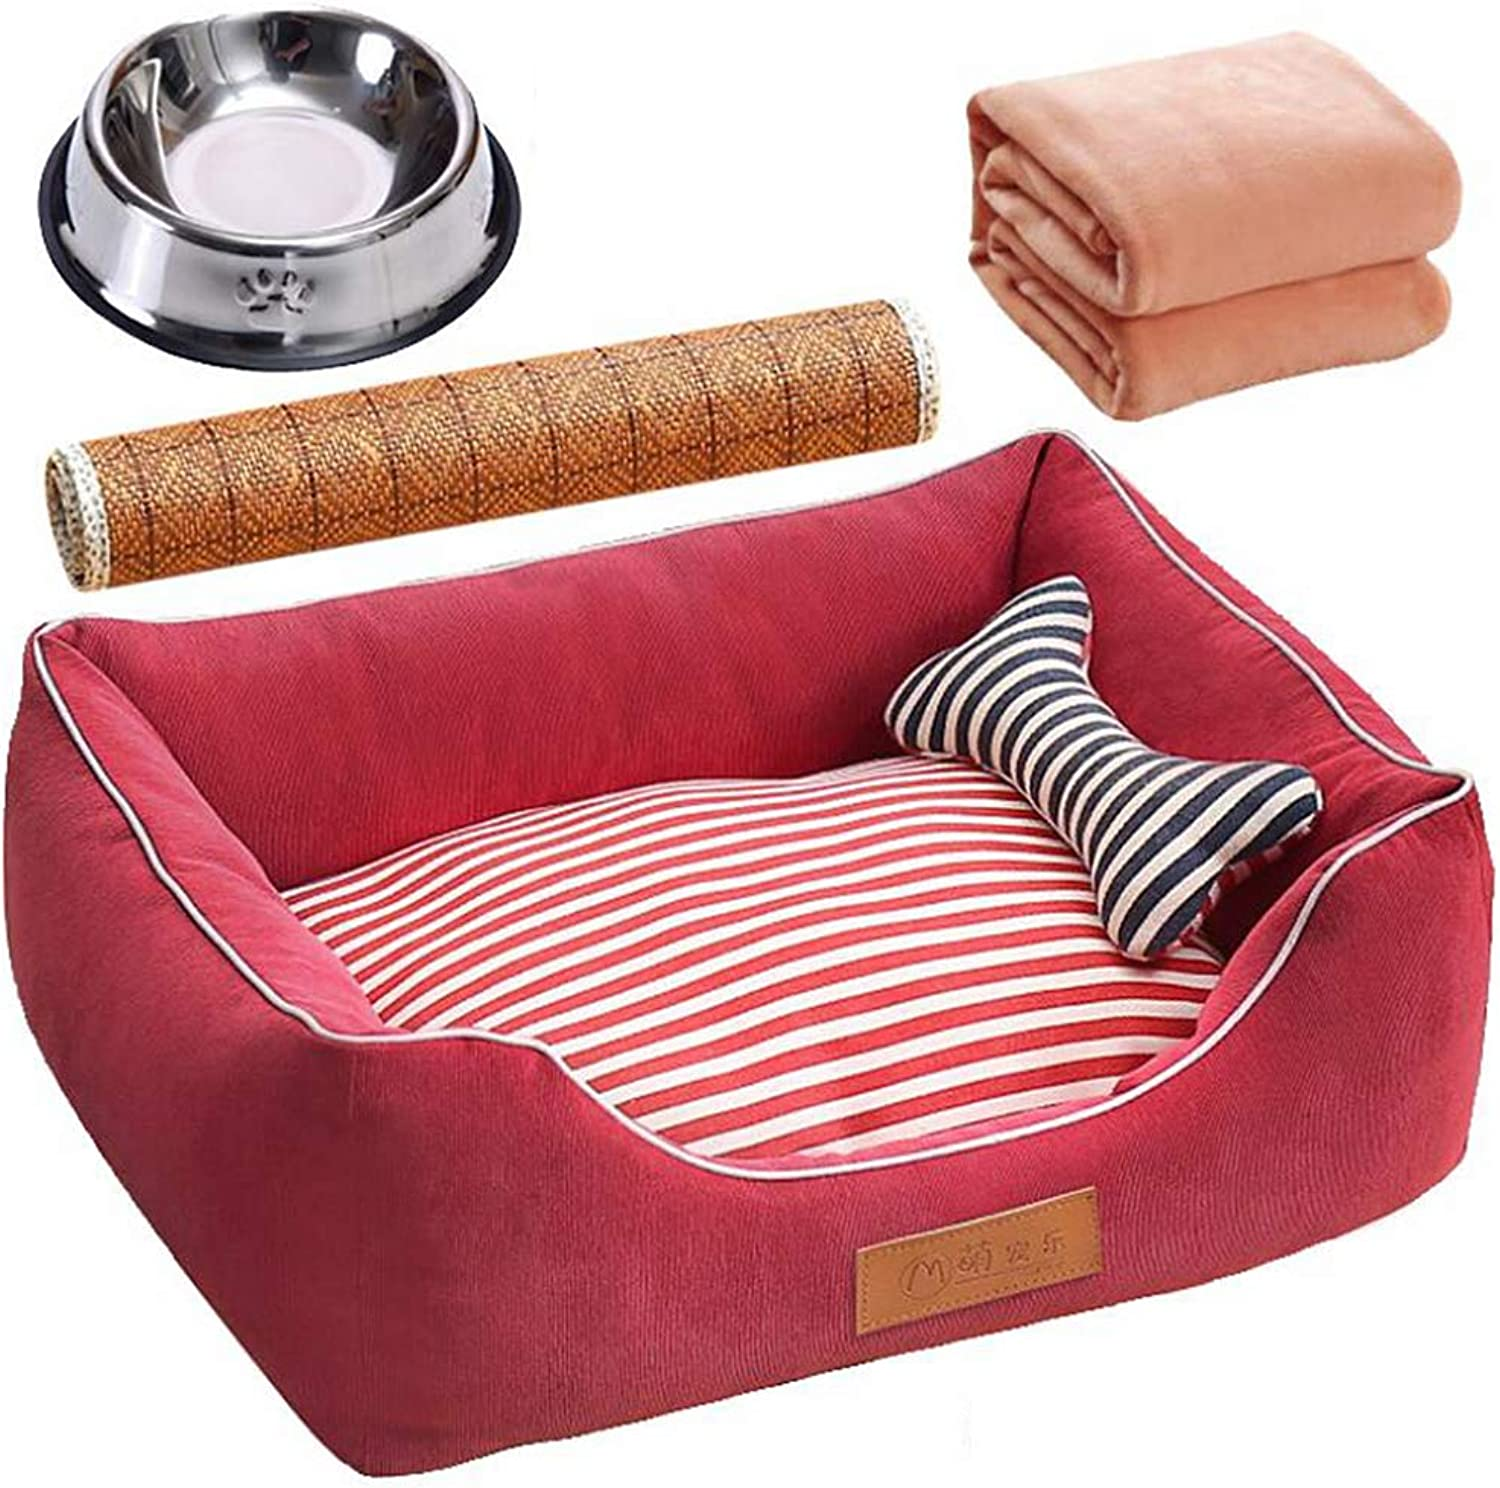 CUUYQ Nonslip Deluxe pet beds, Dog & cat beds Soft pad Cozy Pet cushion Washable Pet bed For dogs & cats,color B_L